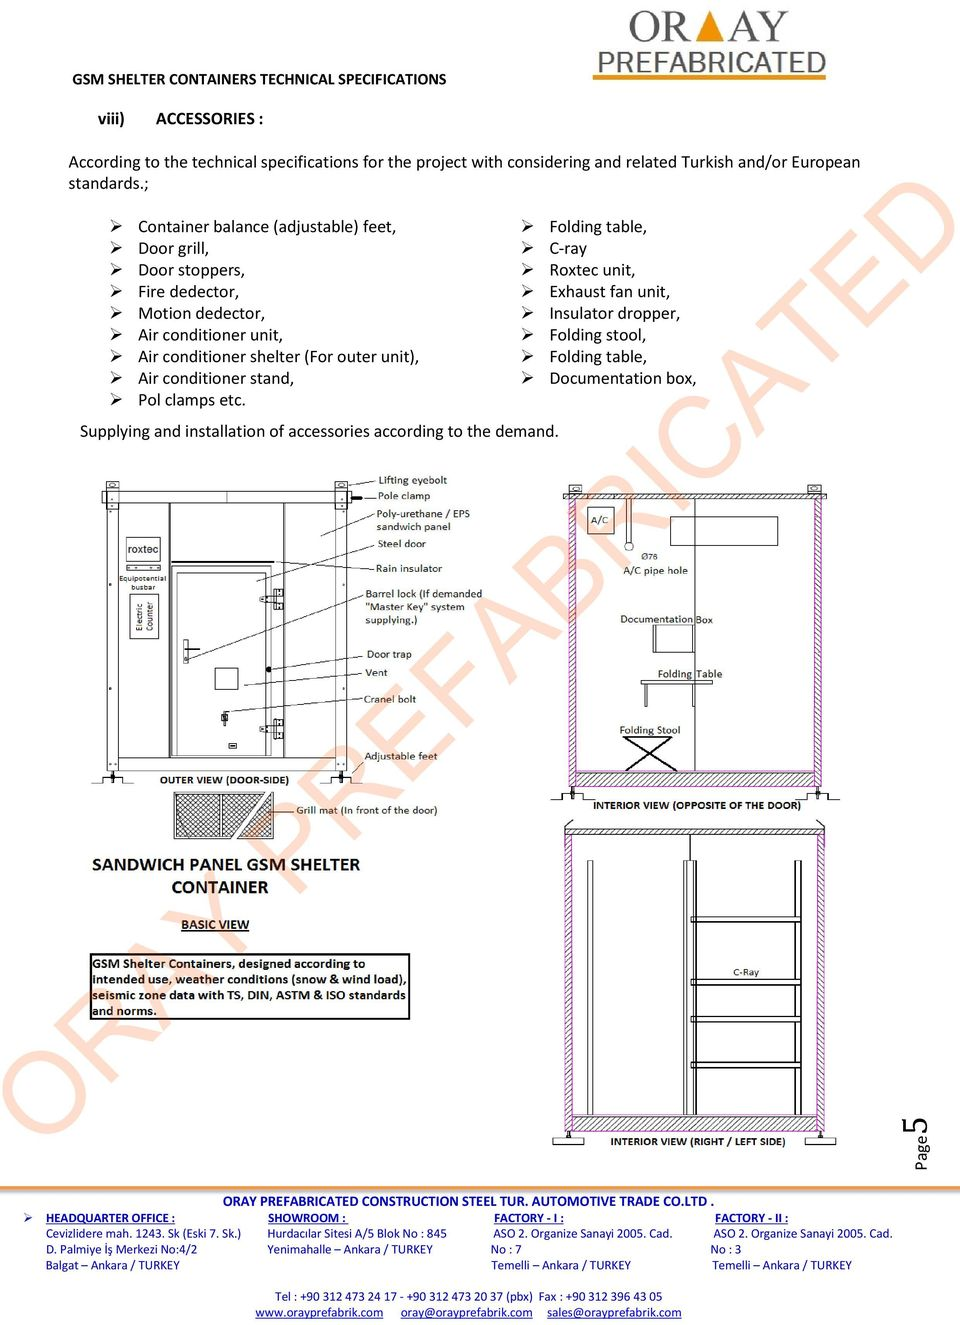 ; Container balance (adjustable) feet, Door grill, Door stoppers, Fire dedector, Motion dedector, Air conditioner unit, Air